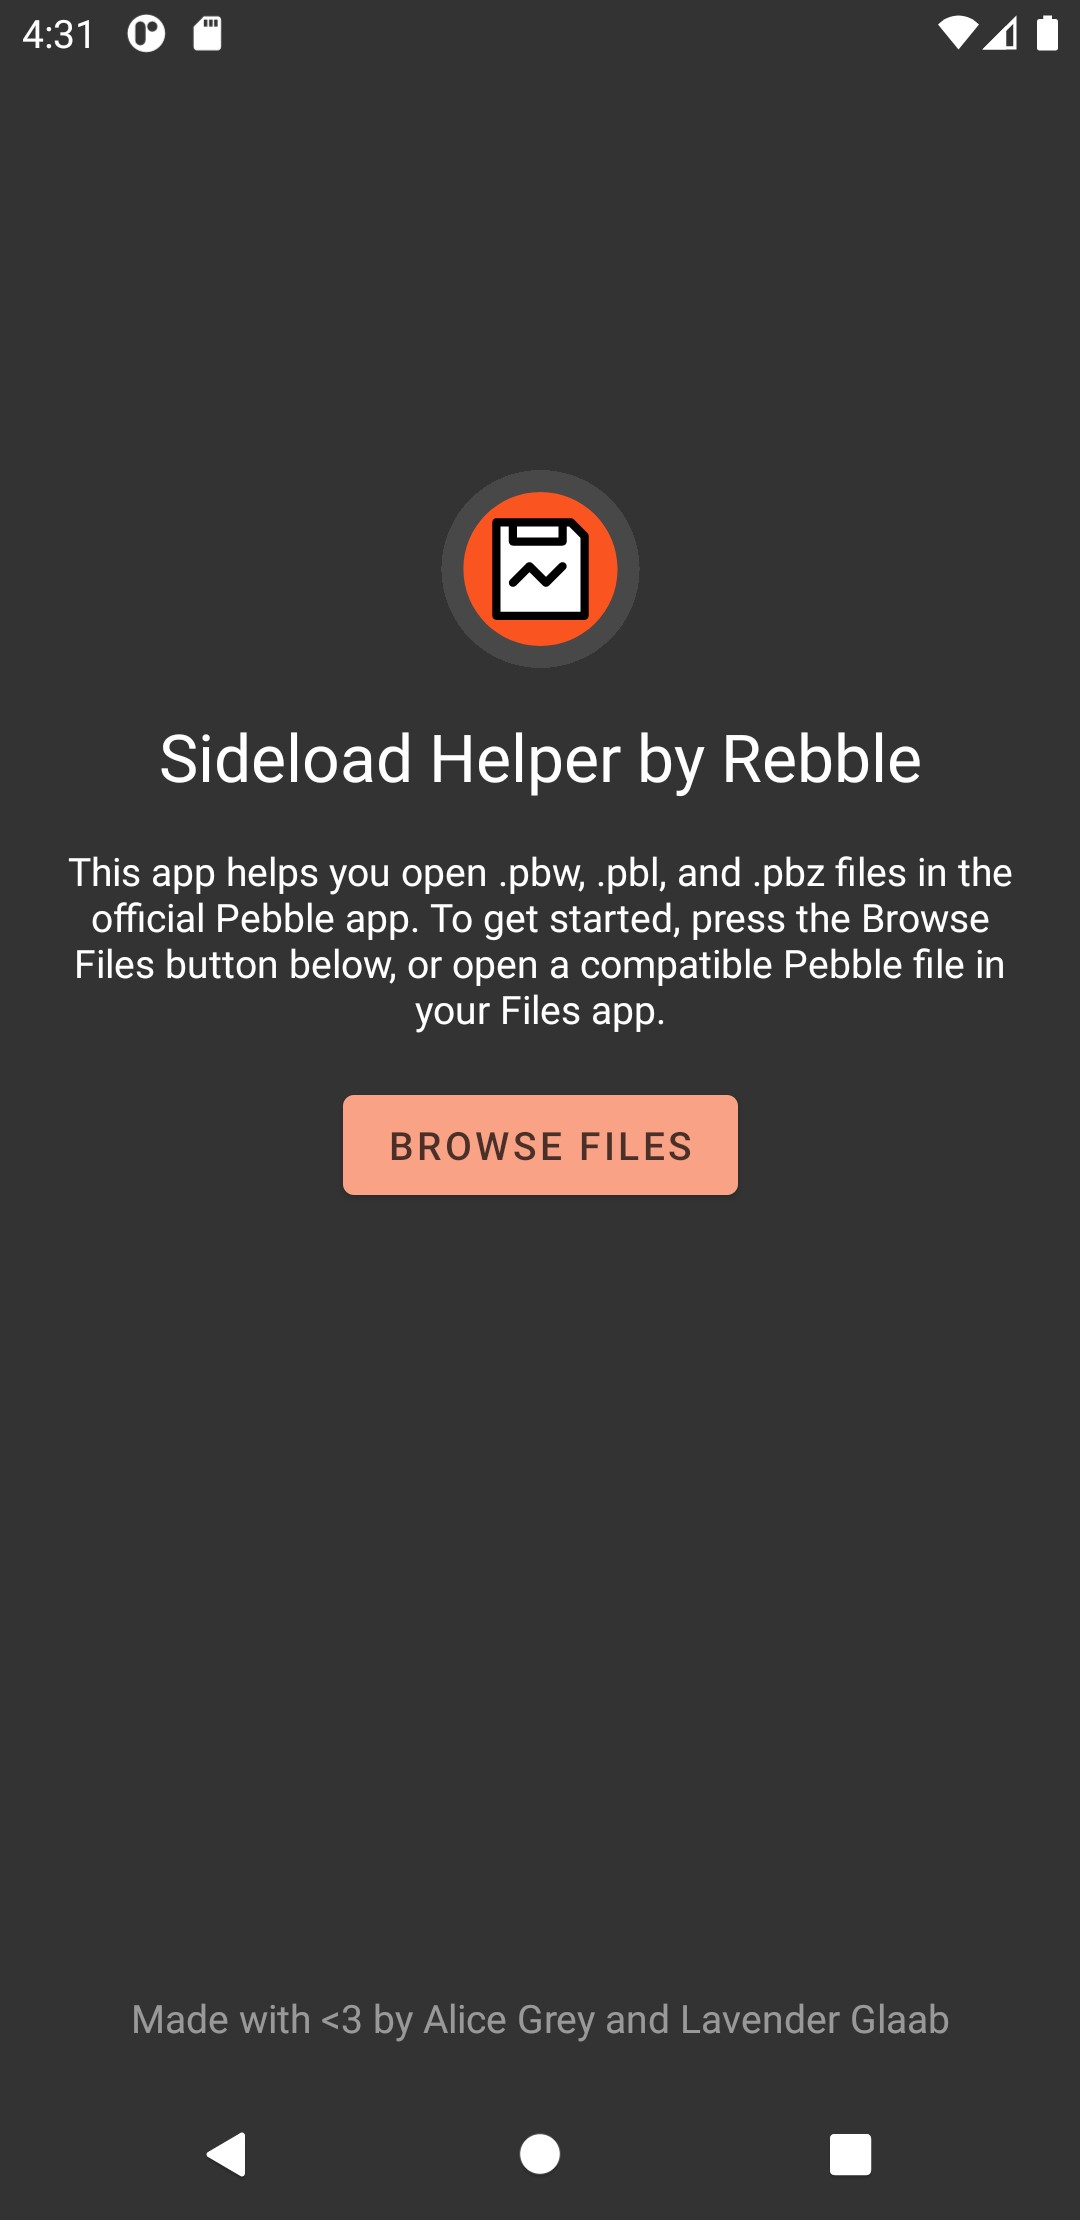 Sideload Helper by Rebble for pebble smartwatches